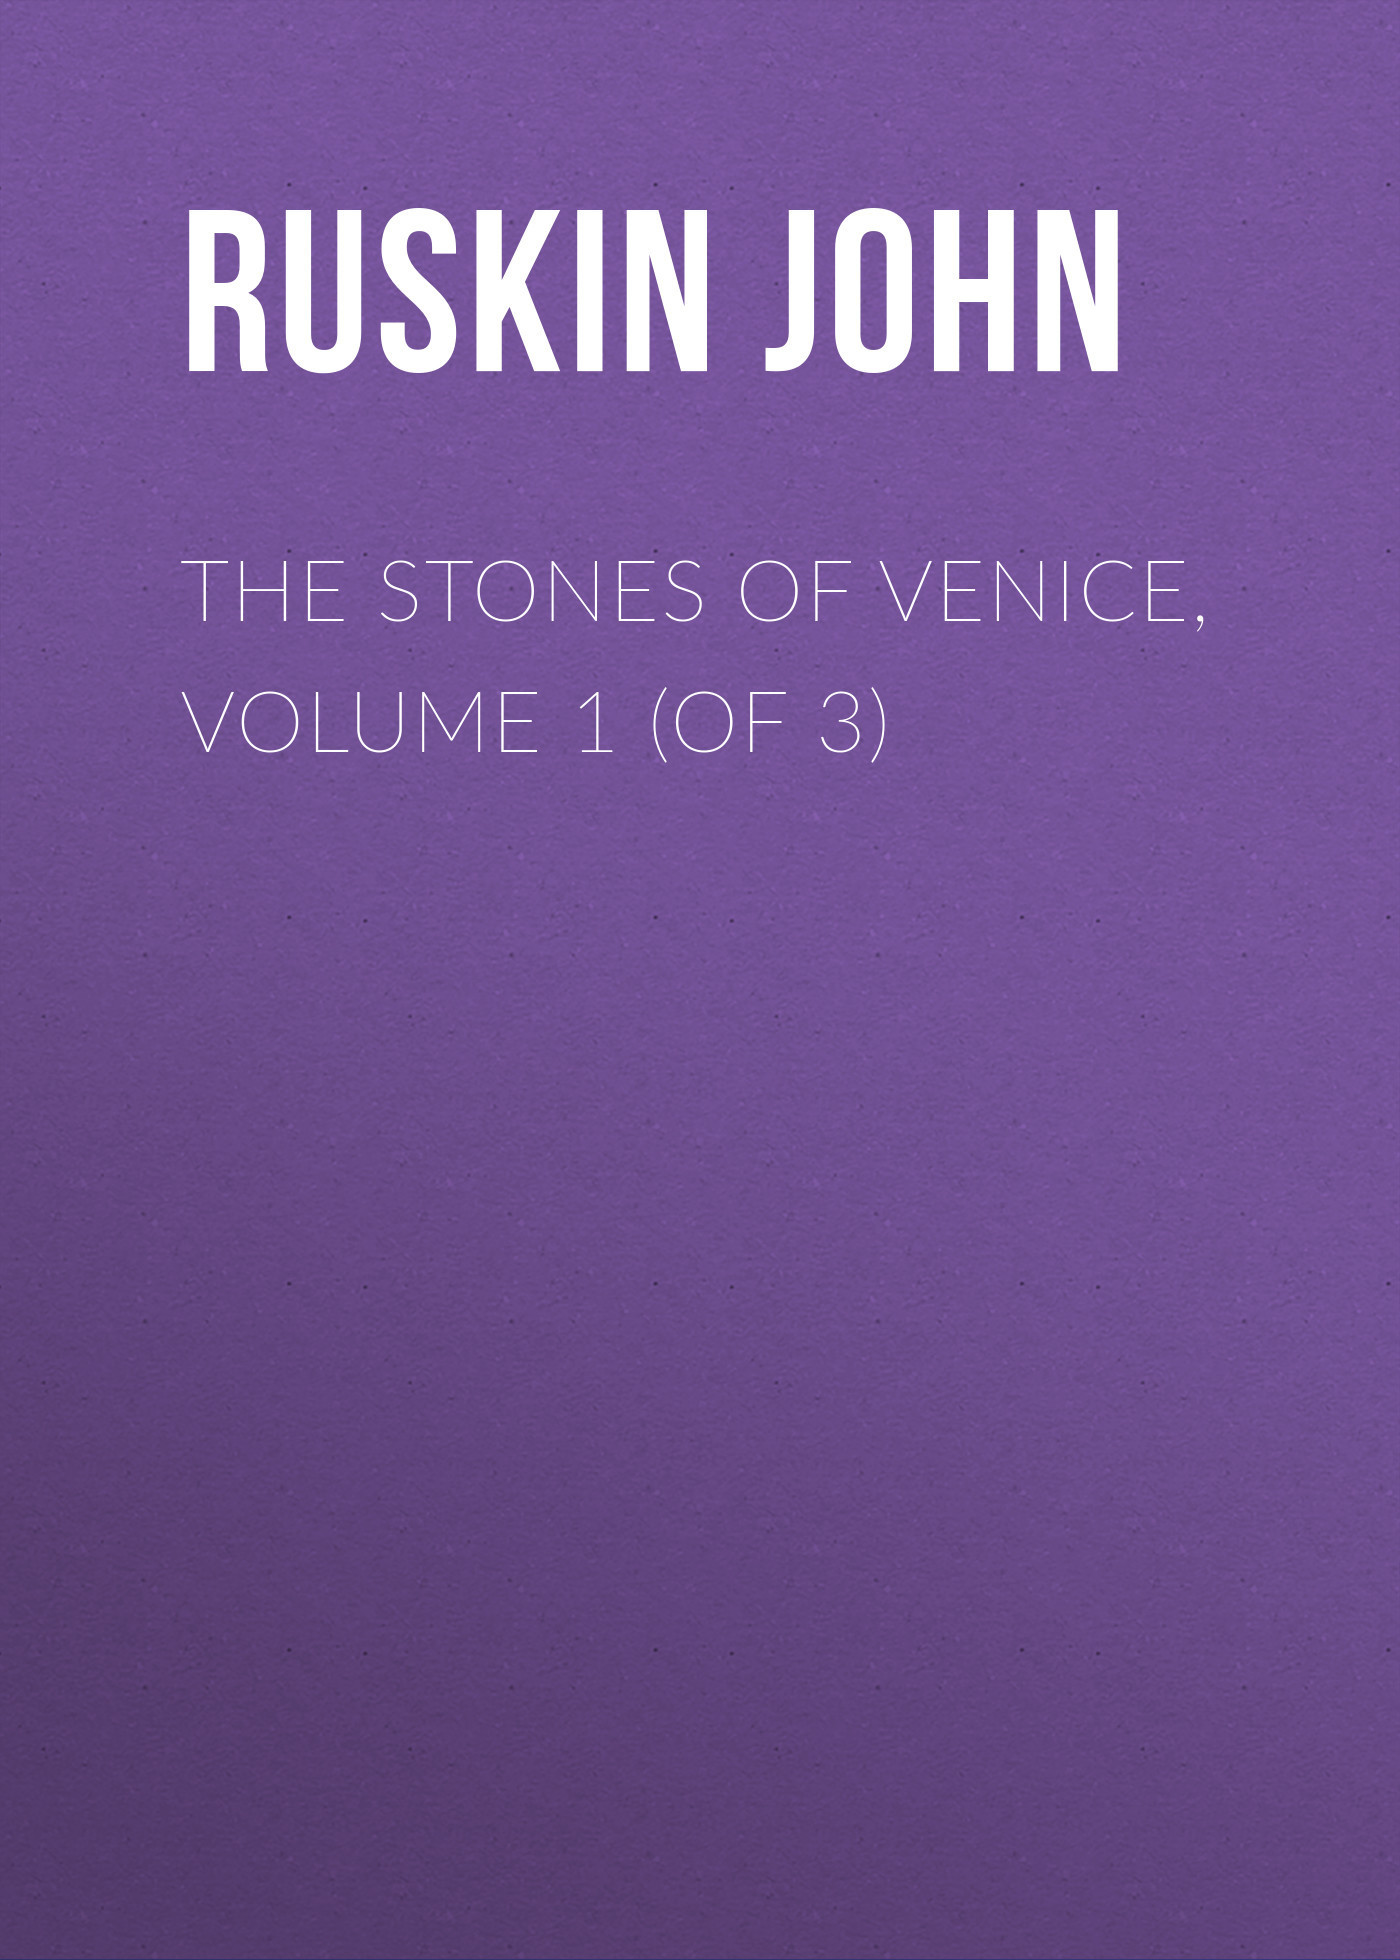 Ruskin John The Stones of Venice, Volume 1 (of 3) the secrets of droon volume 1 books 1 3 page 8